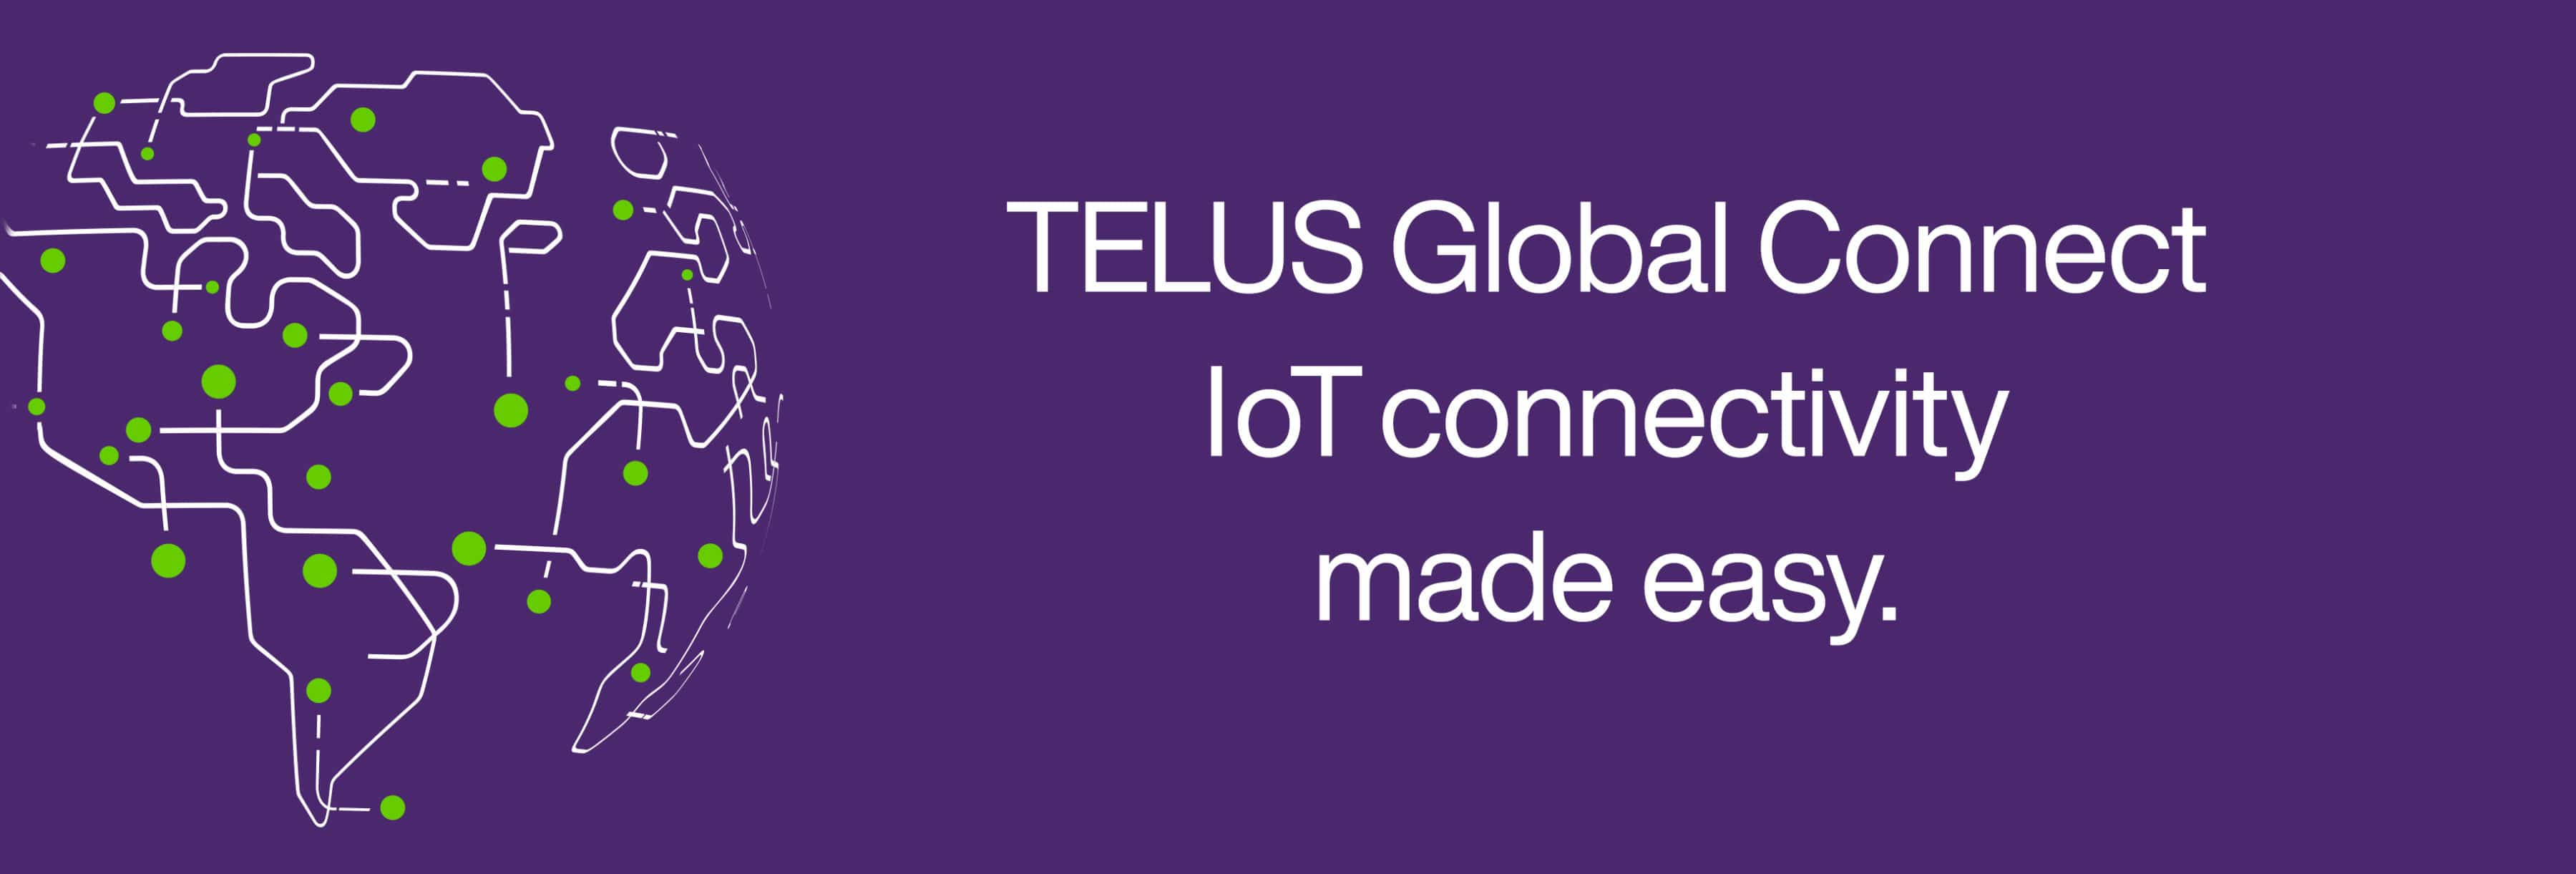 telus global connect